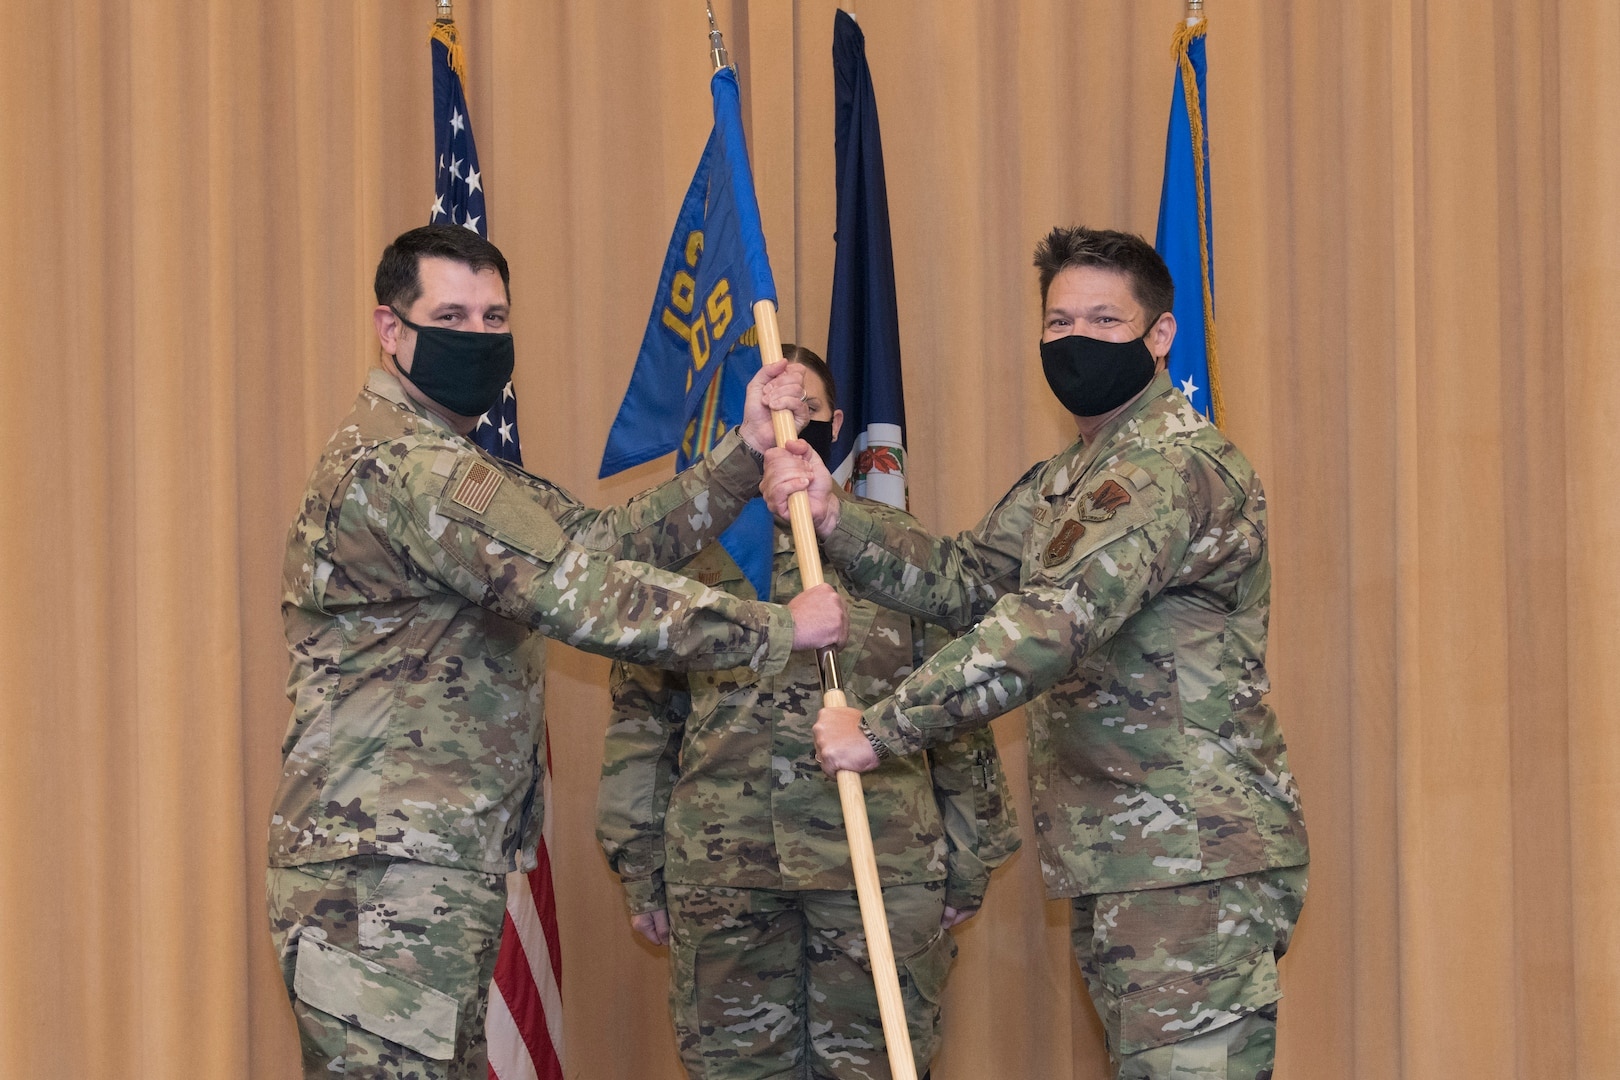 Two Airmen hold a flag during a military change of command ceremony